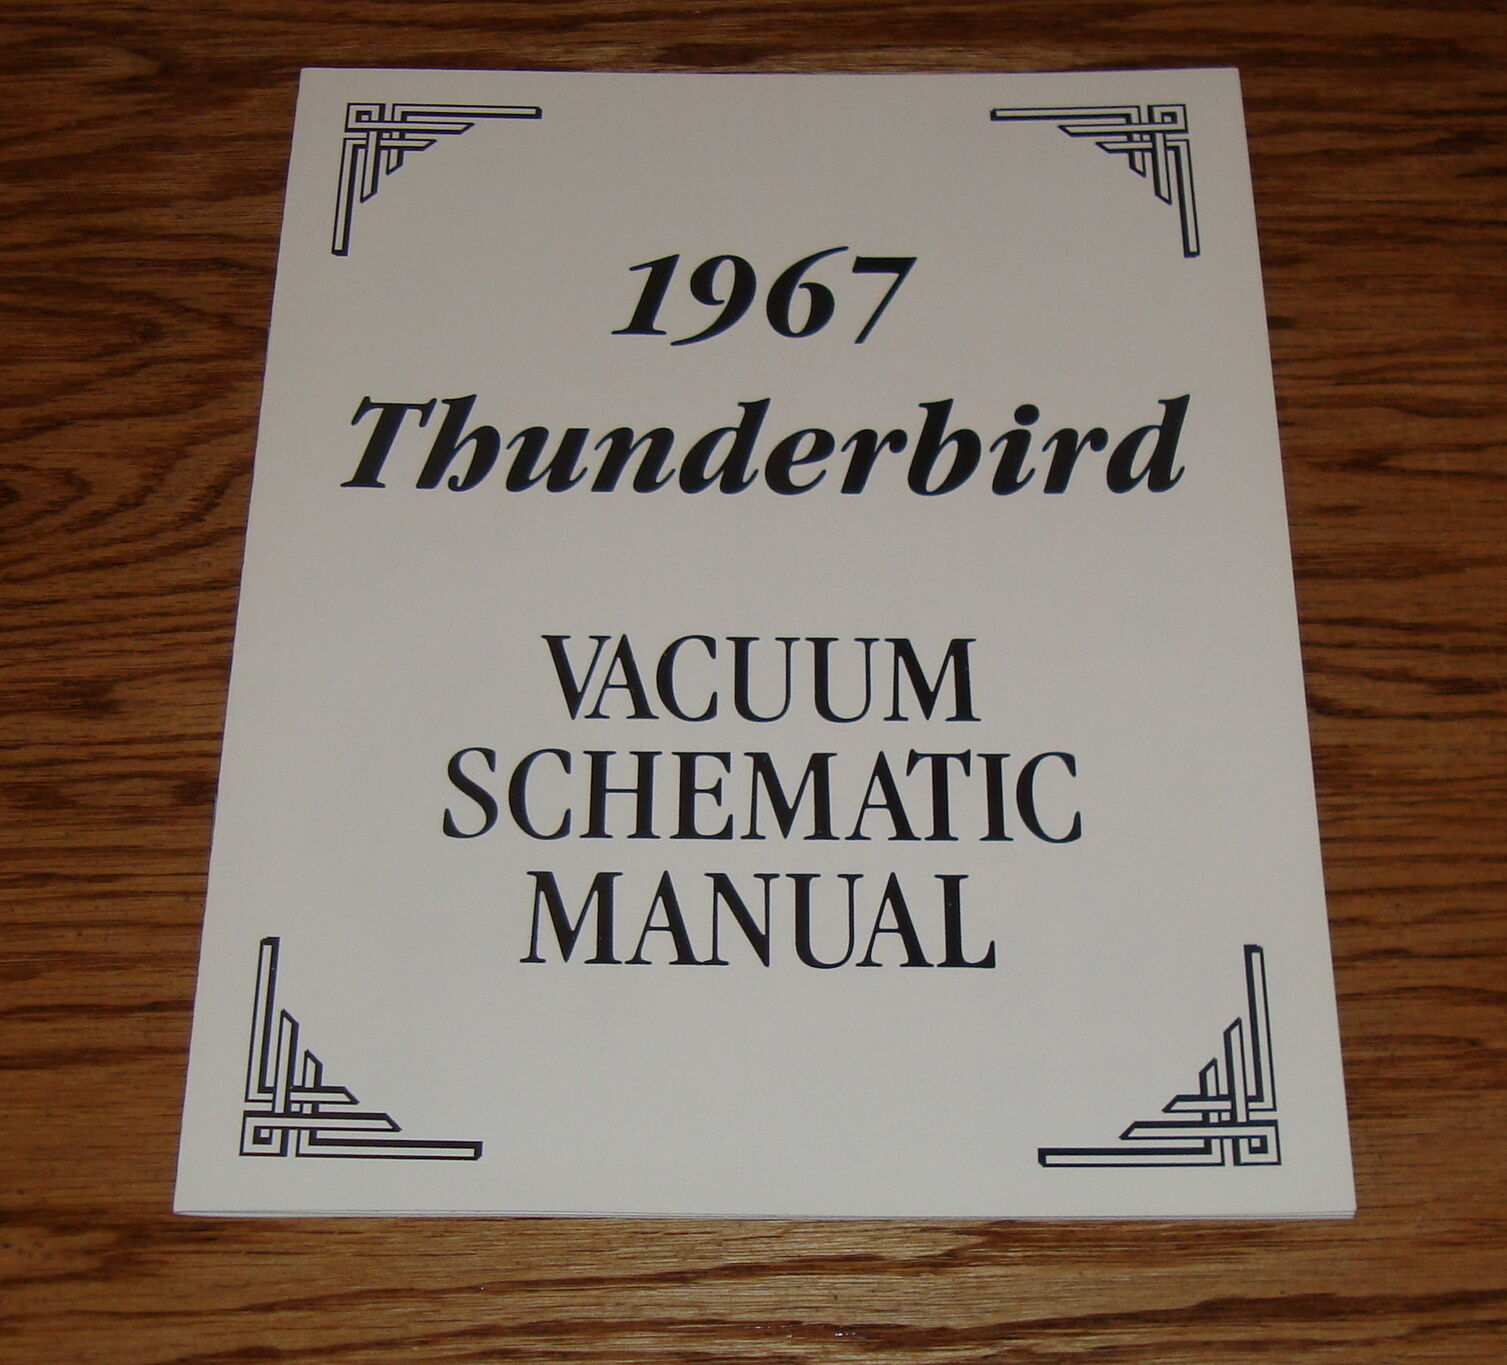 1967 Ford Thunderbird Vacuum Schematic Manual 67 900 Picclick. 1967 Ford Thunderbird Vacuum Schematic Manual 67 1 Of 1only 2 Available. Ford. 1957 Ford Thunderbird Vacuum Line Diagram At Scoala.co